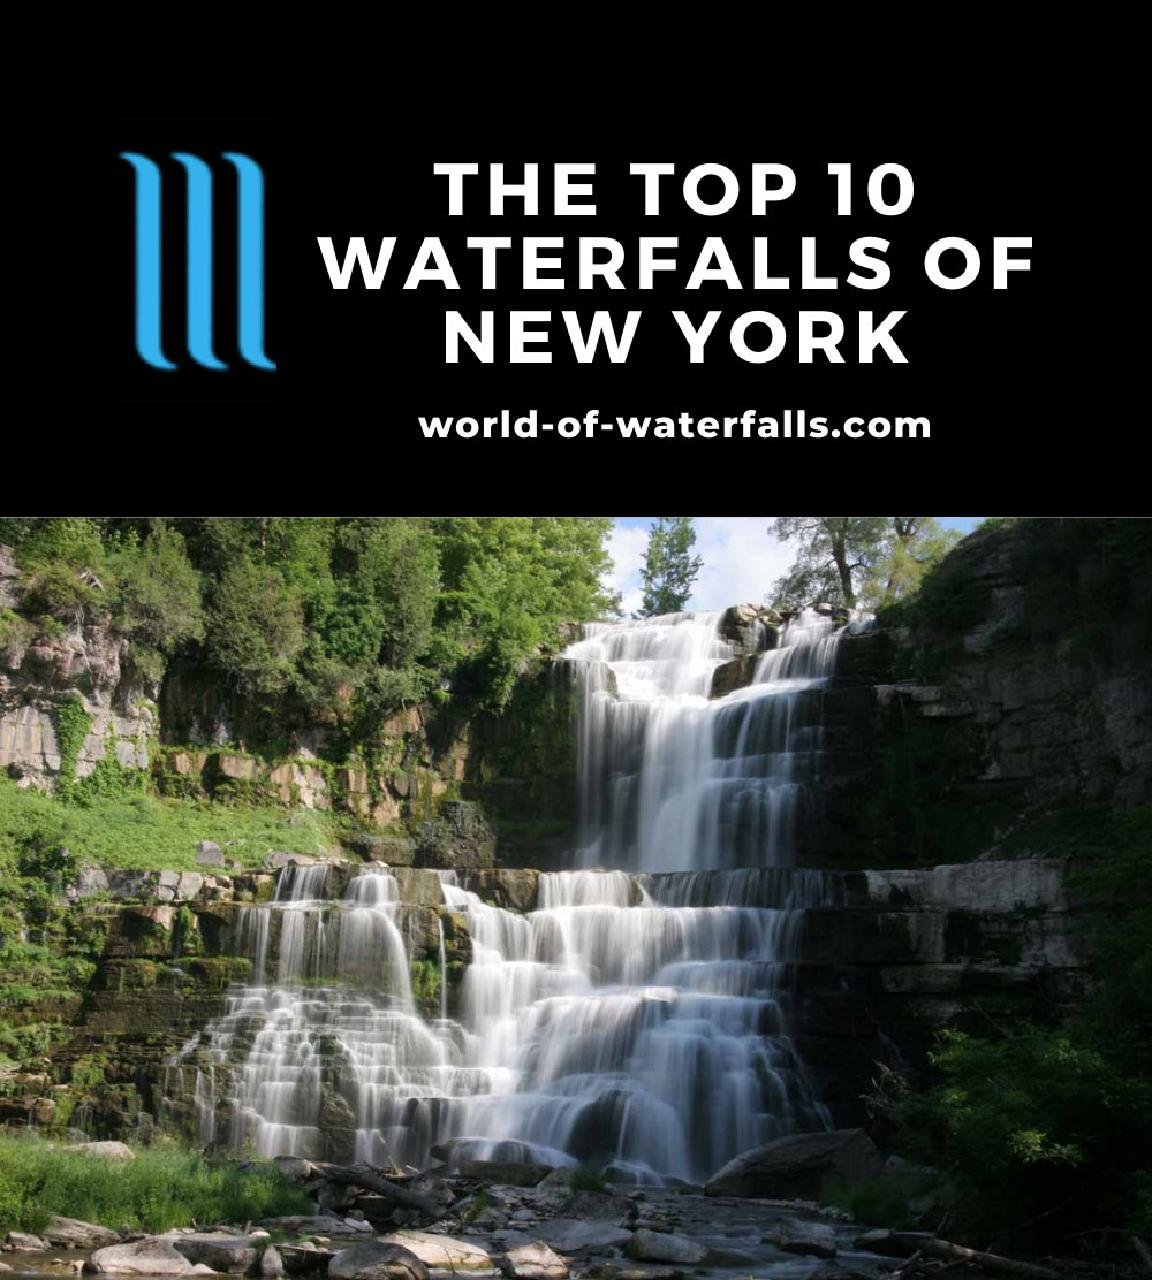 The Top 10 Waterfalls of New York